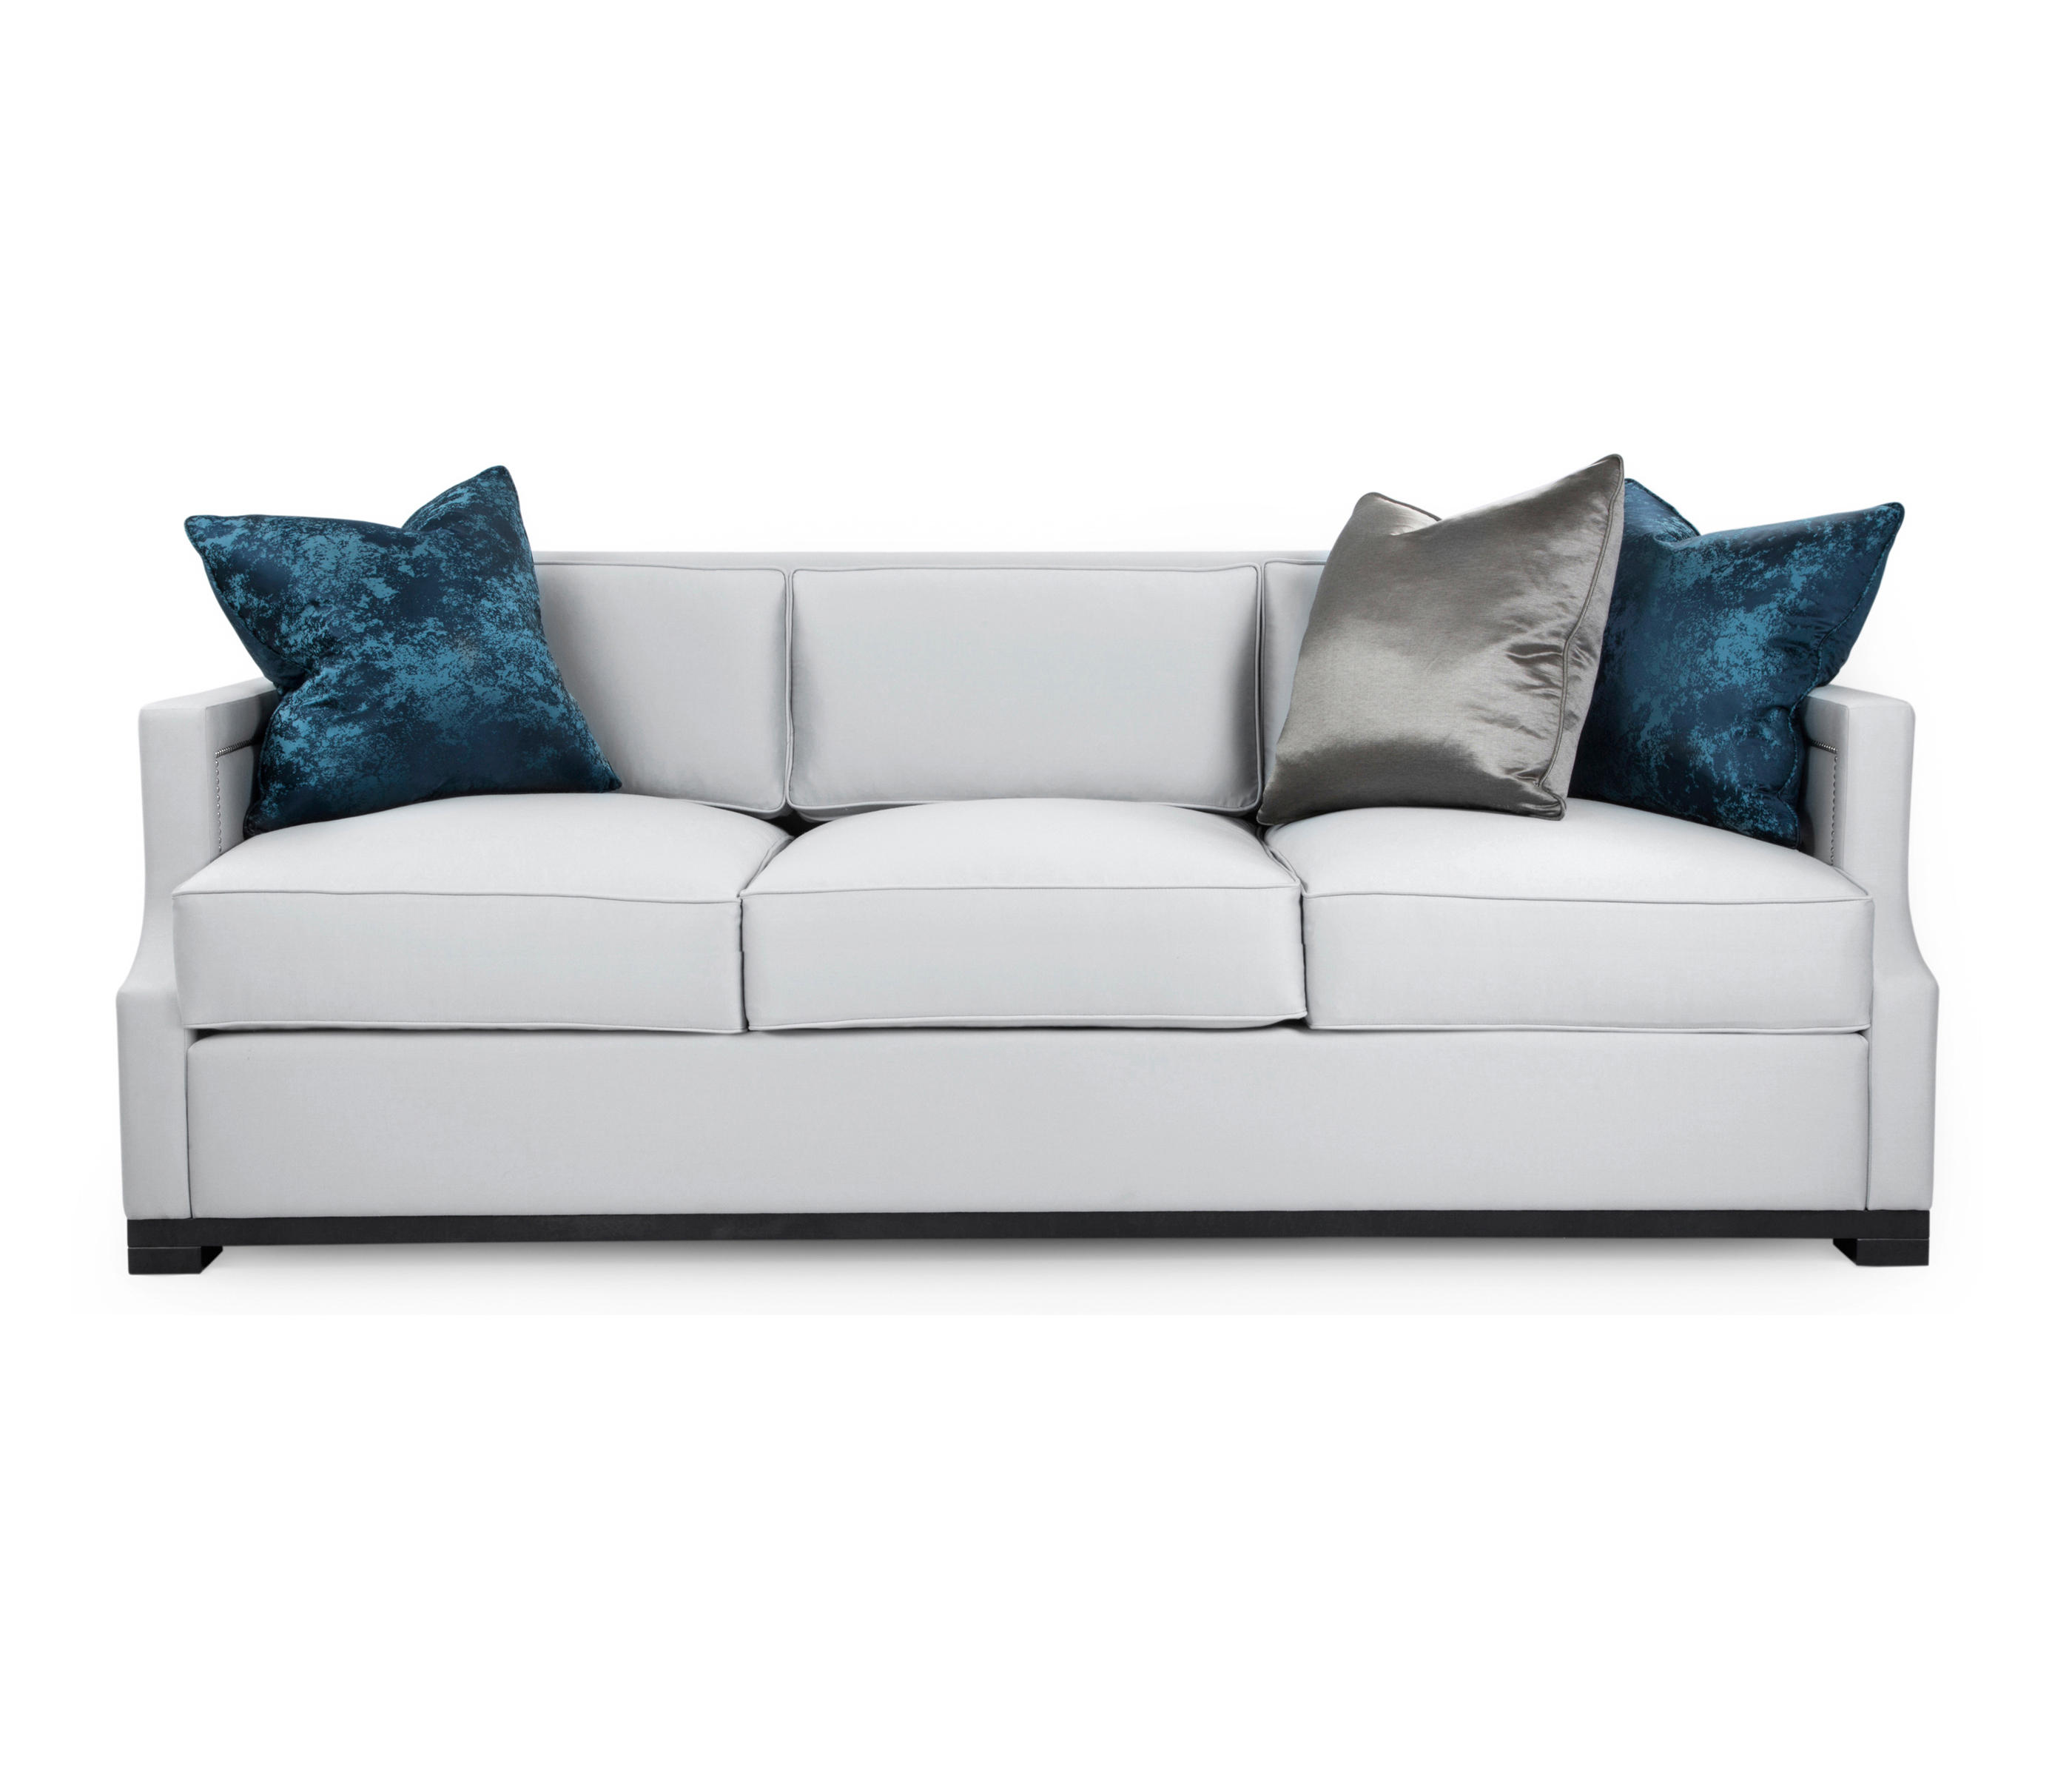 Belvedere sofa lounge sofas from the sofa chair for Sofa sofa company